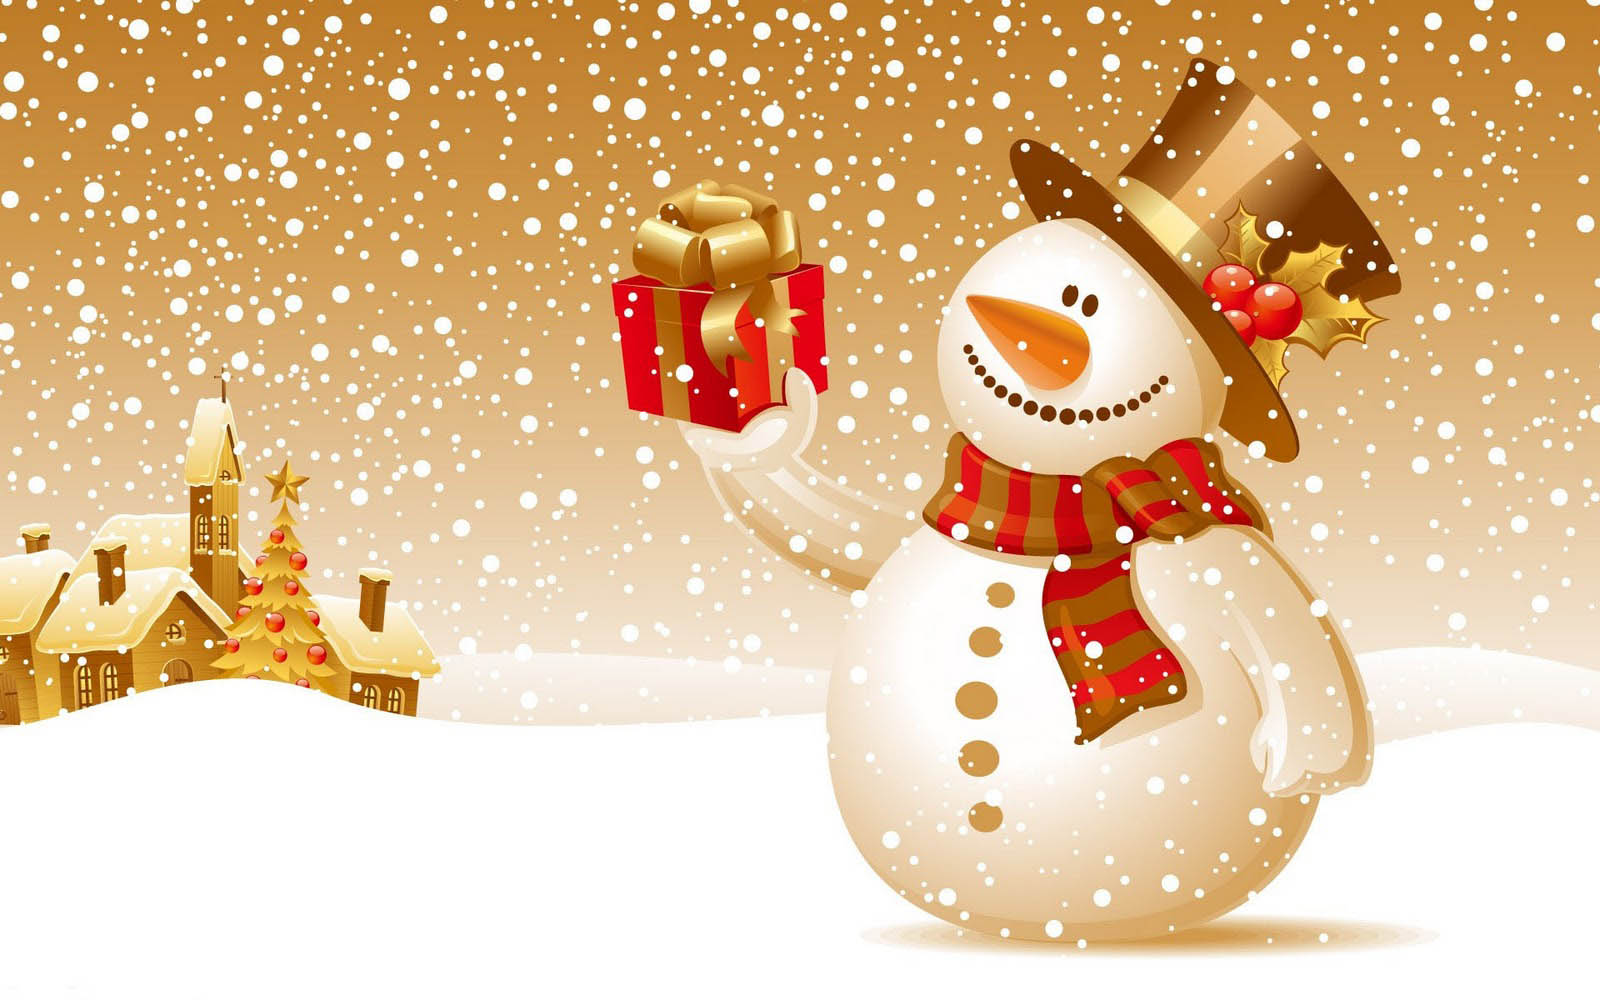 Gallery Mangklex Snowman Backgrounds